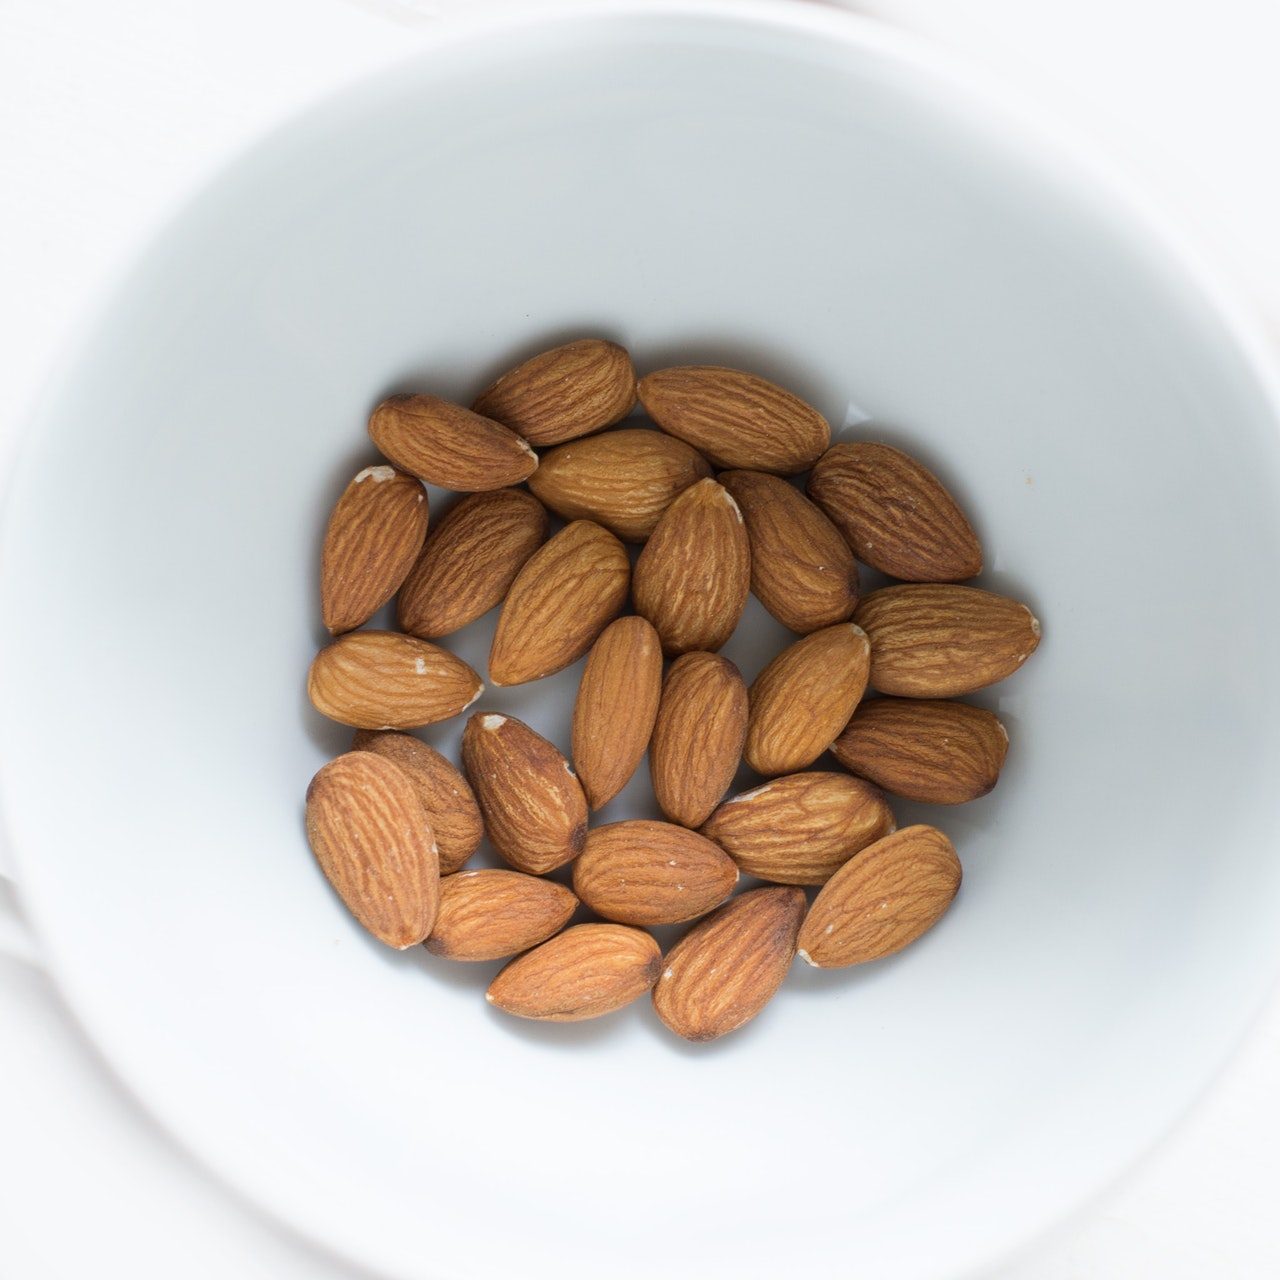 nuts-almonds-small-bowl.jpeg